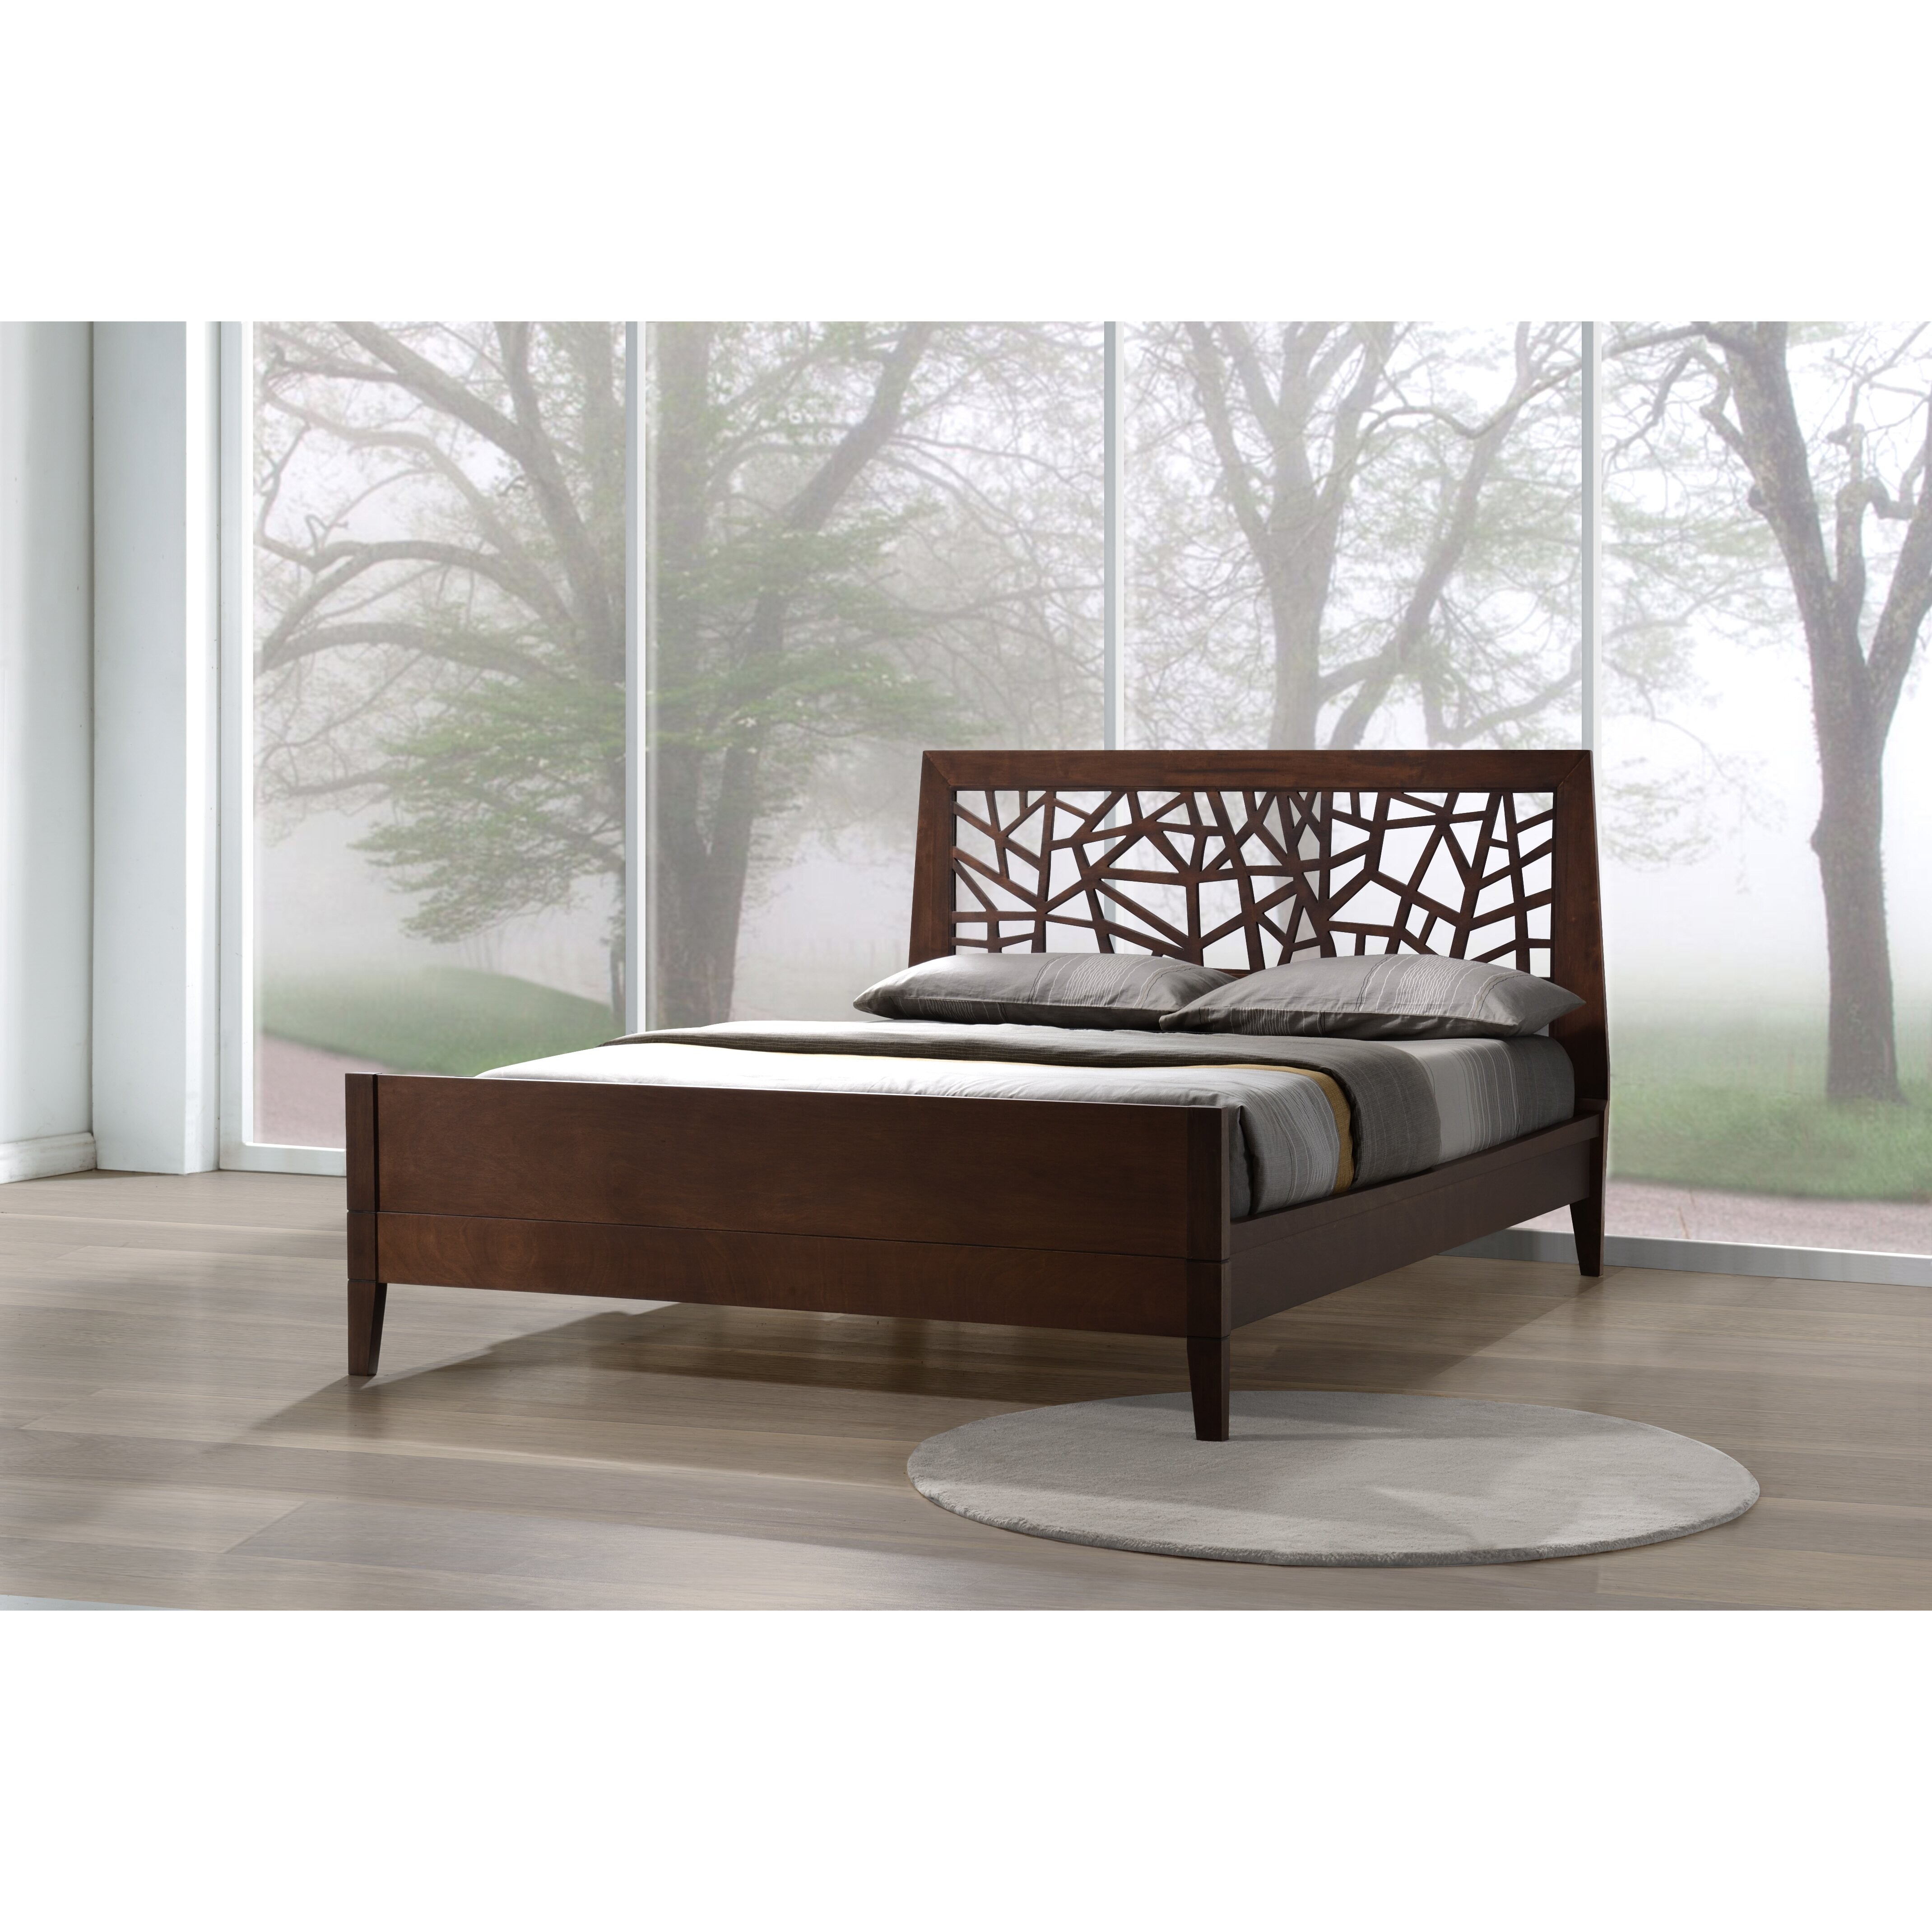 Wholesale Interiors Baxton Studio Bed Frame & Reviews